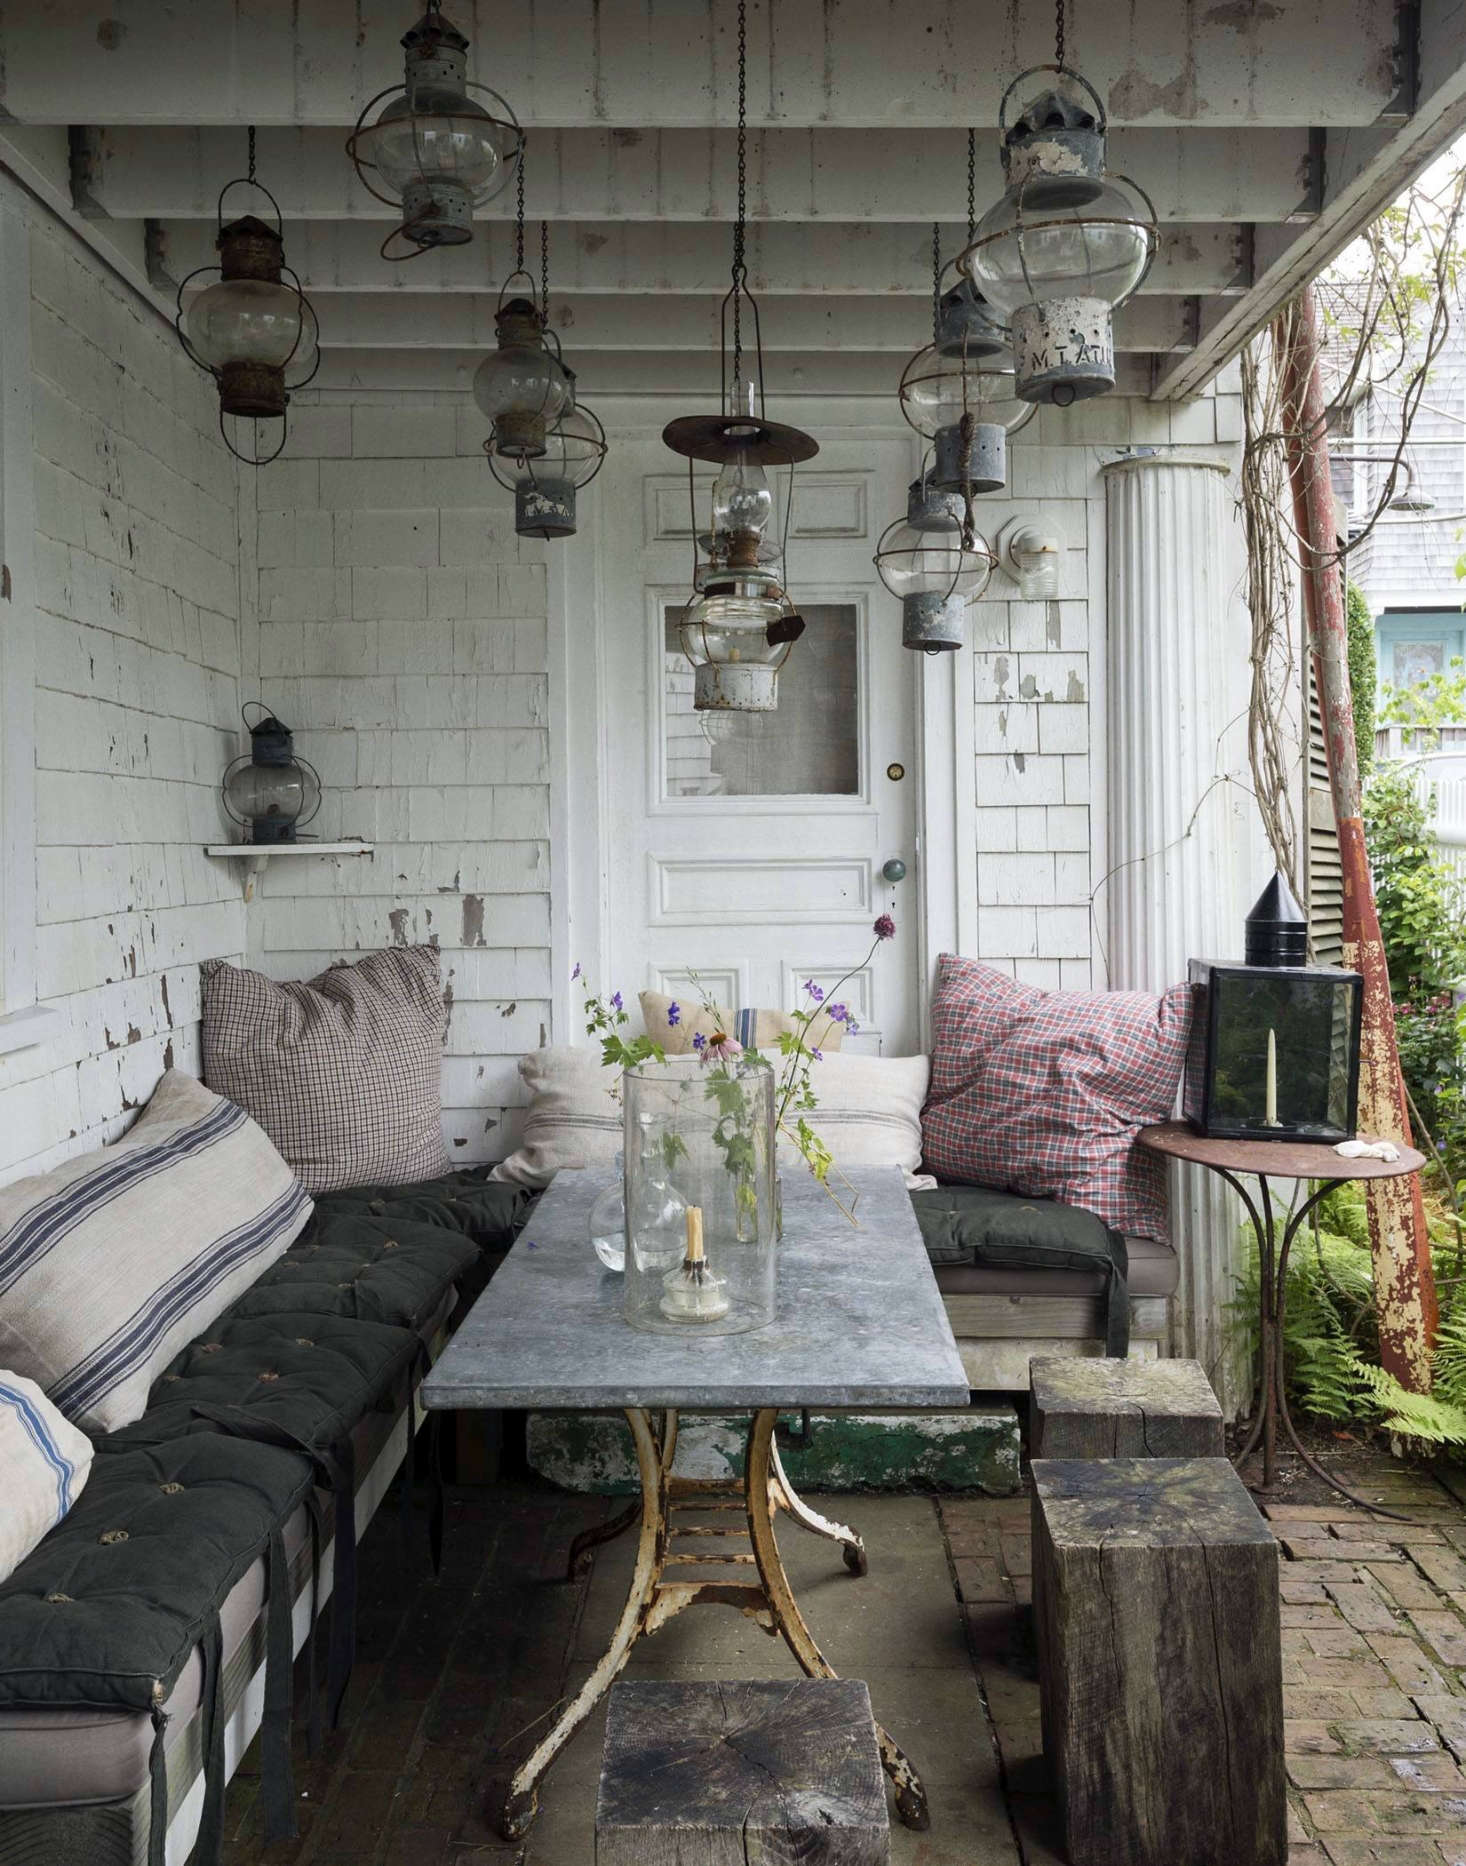 A Covered Brick Patio Serves As An Outdoor Dining Area At Designer John Derians Provincetown